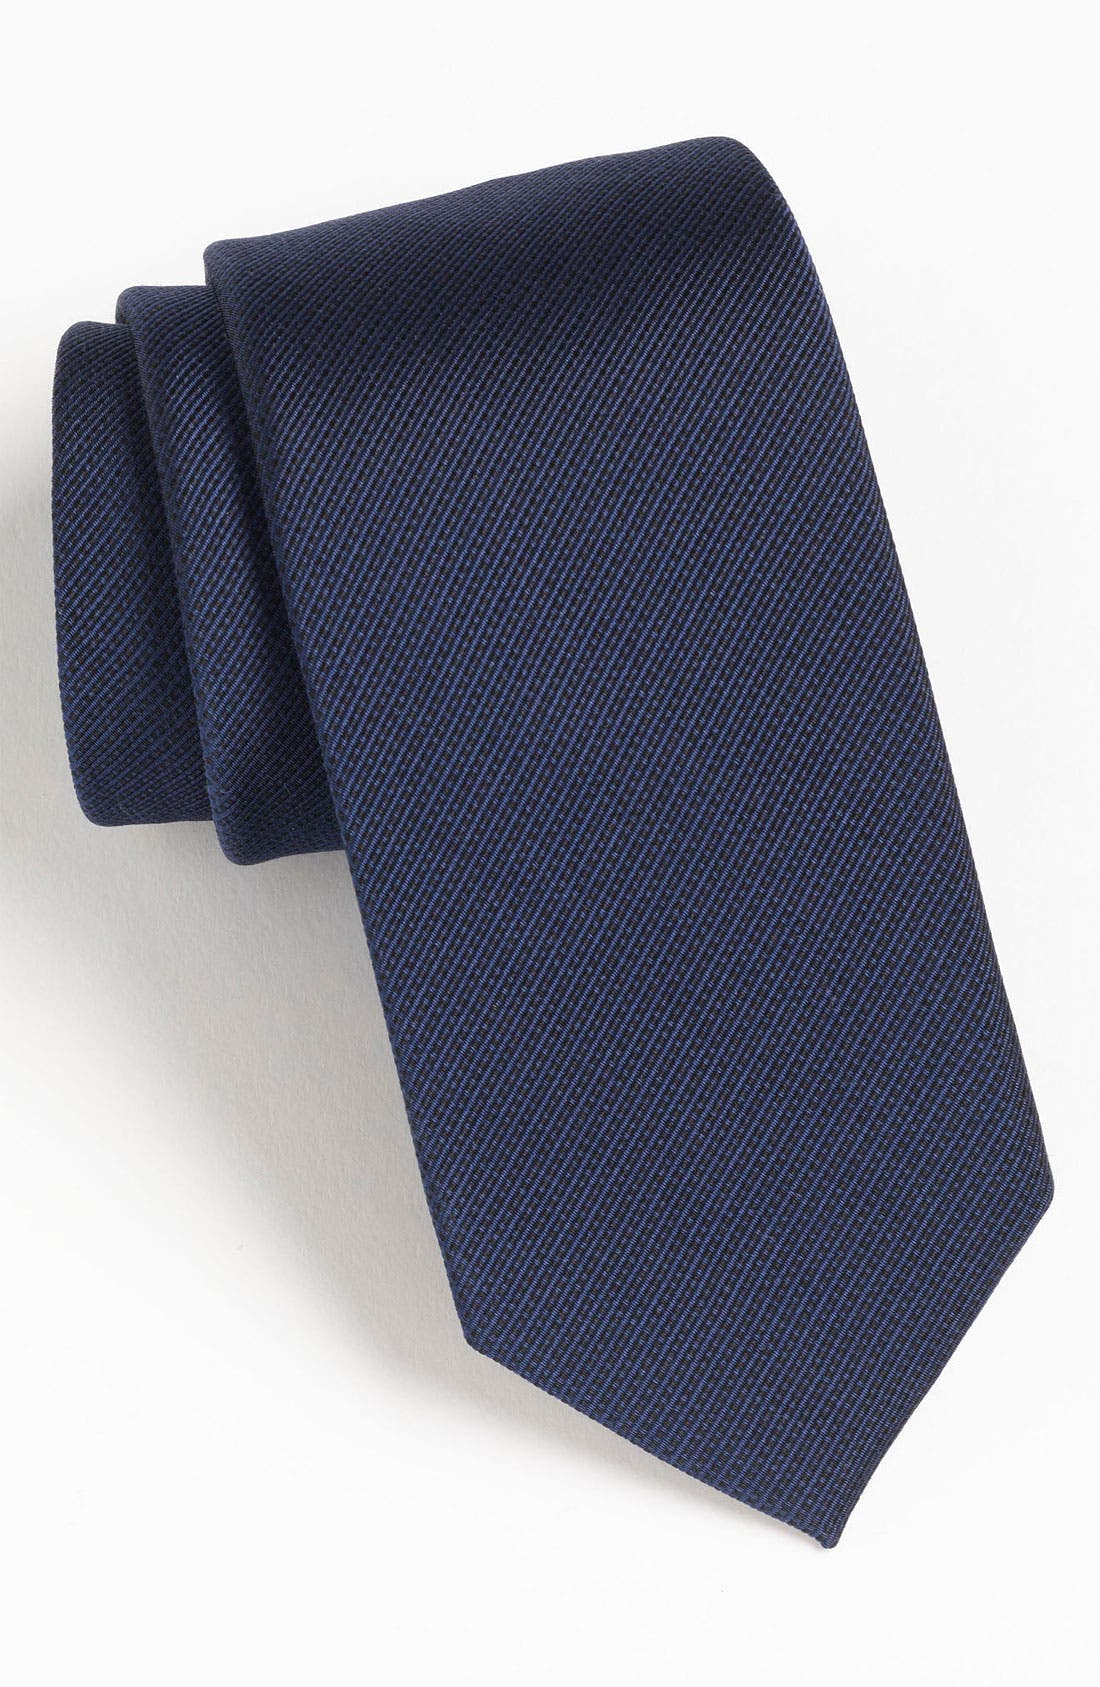 Main Image - The Rail Silk Woven Tie